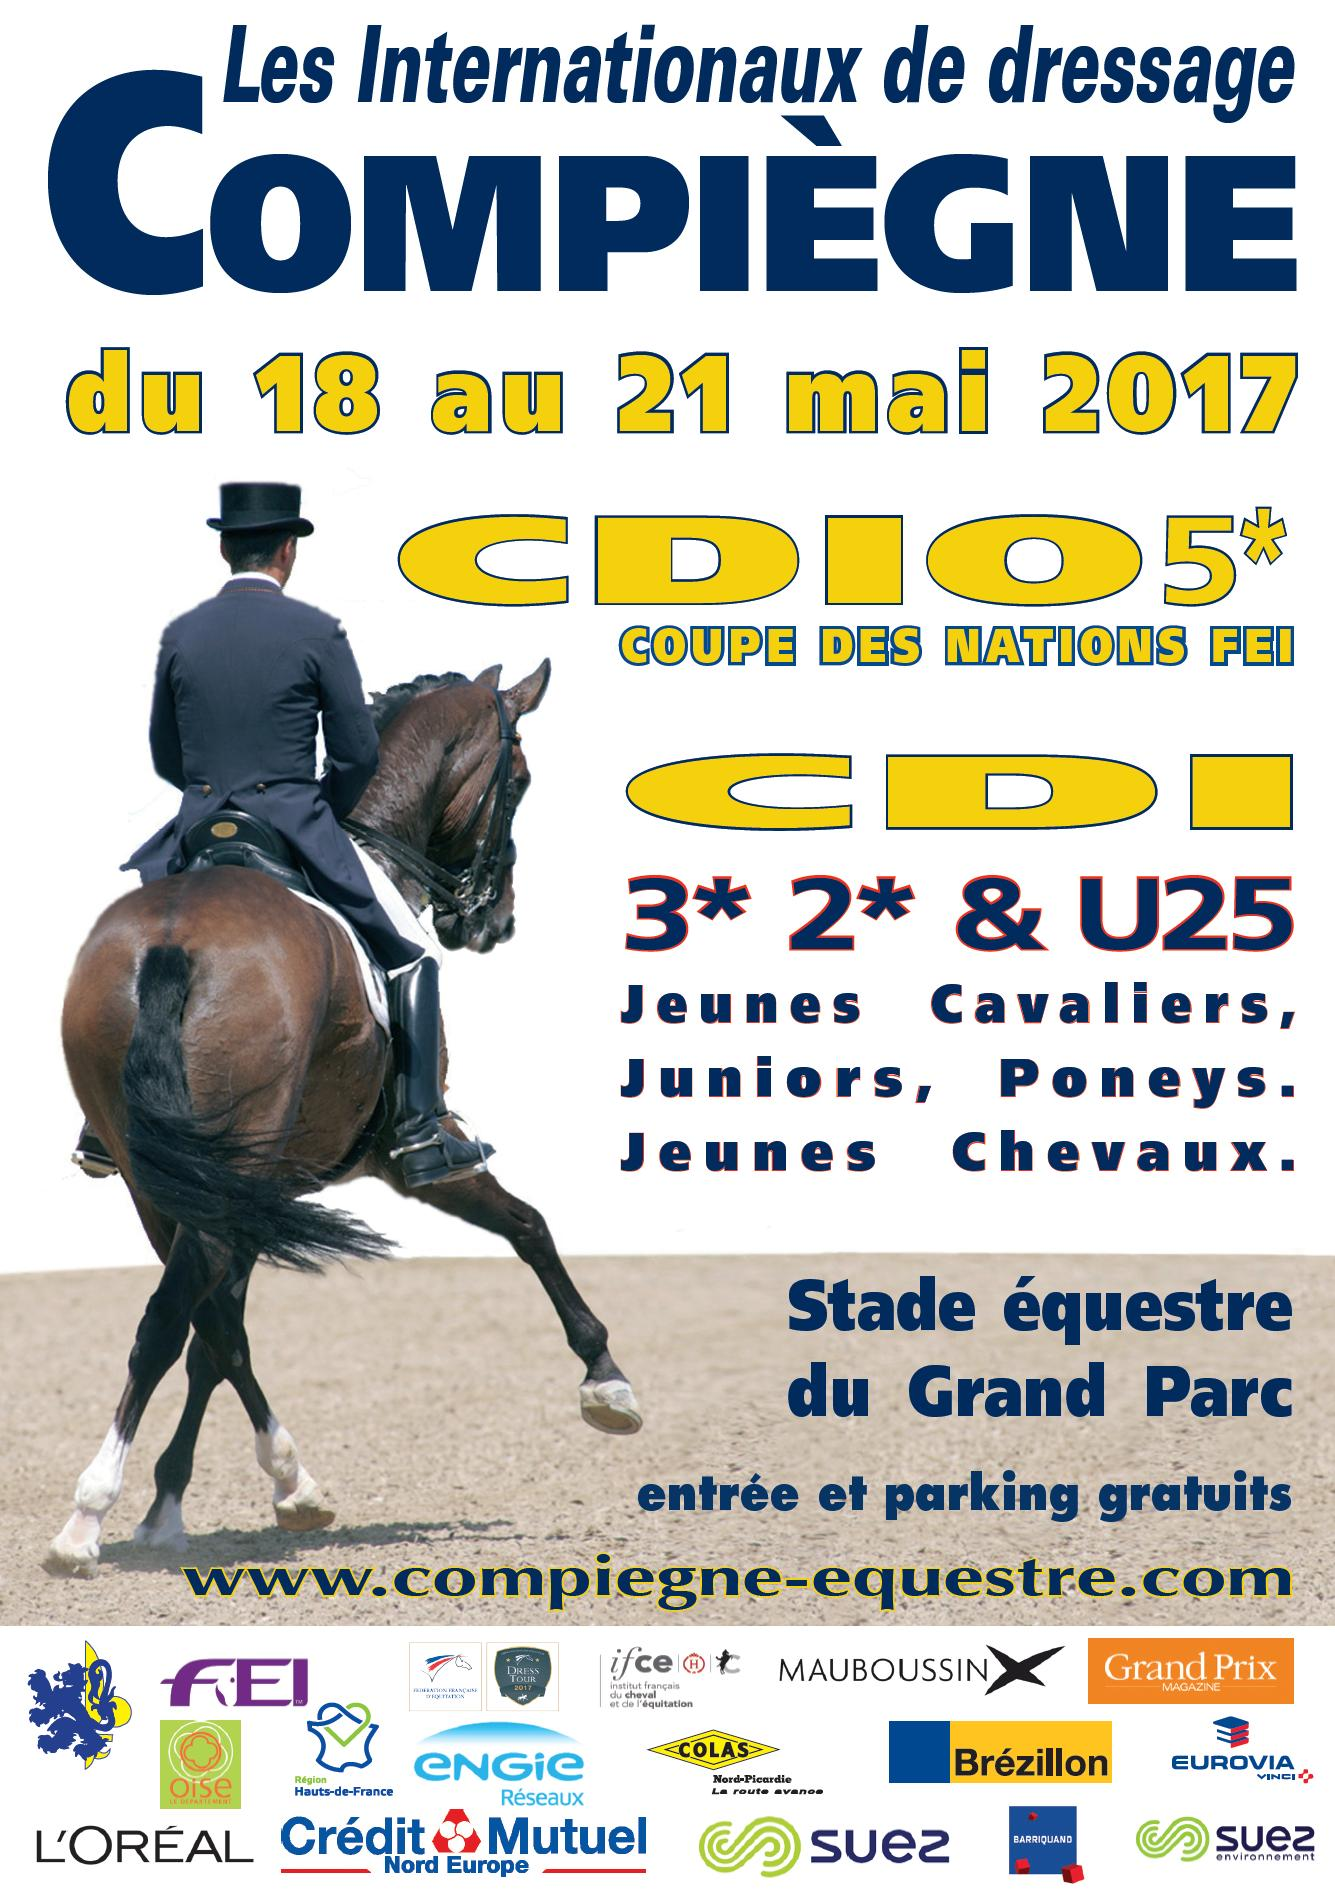 Internationaux de Dressage